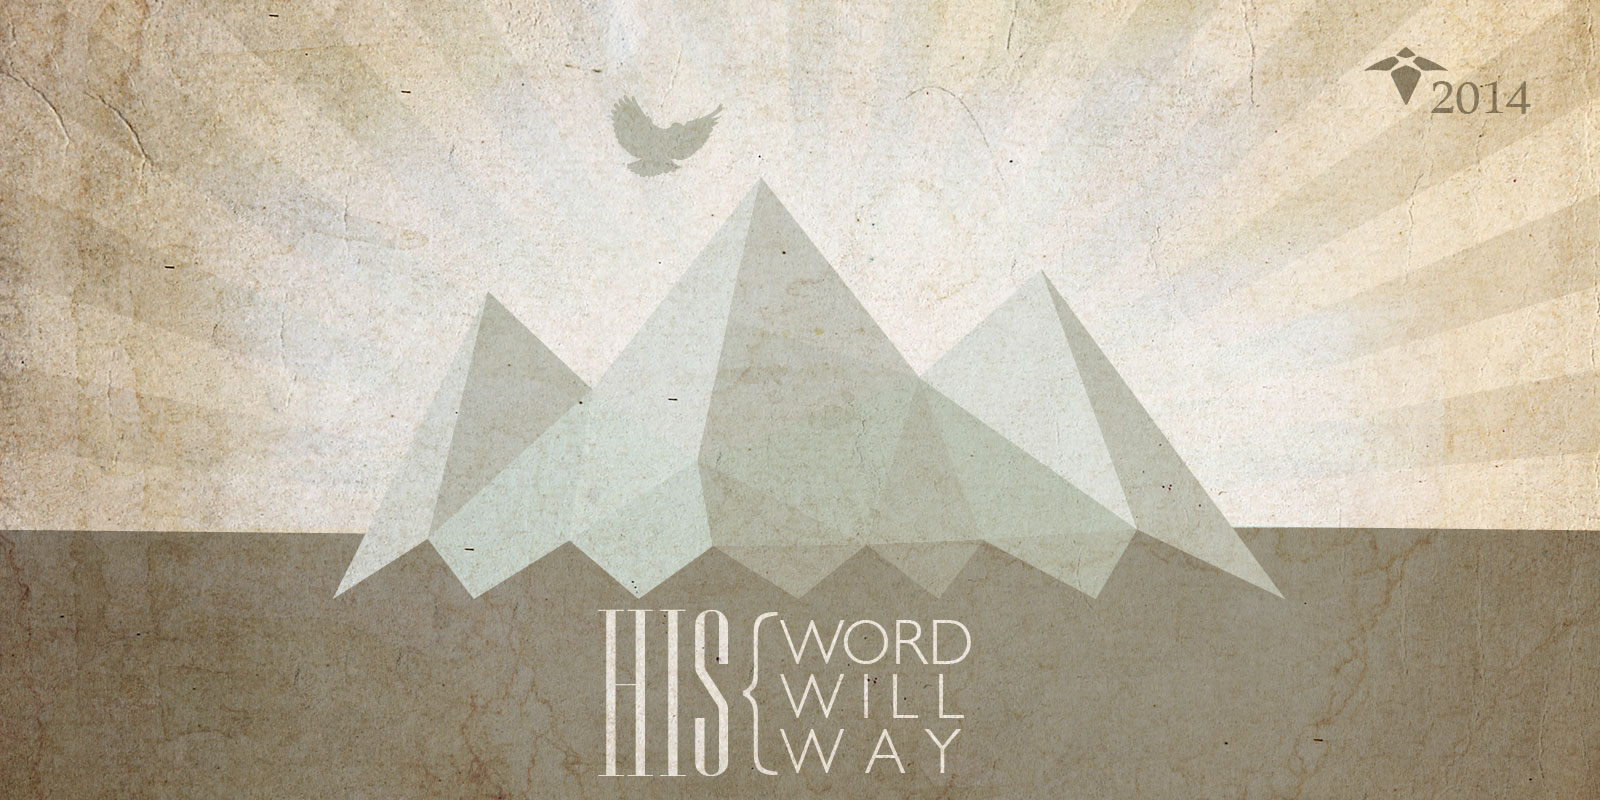 His Word, His Will, His Way - Vision Sunday 2014